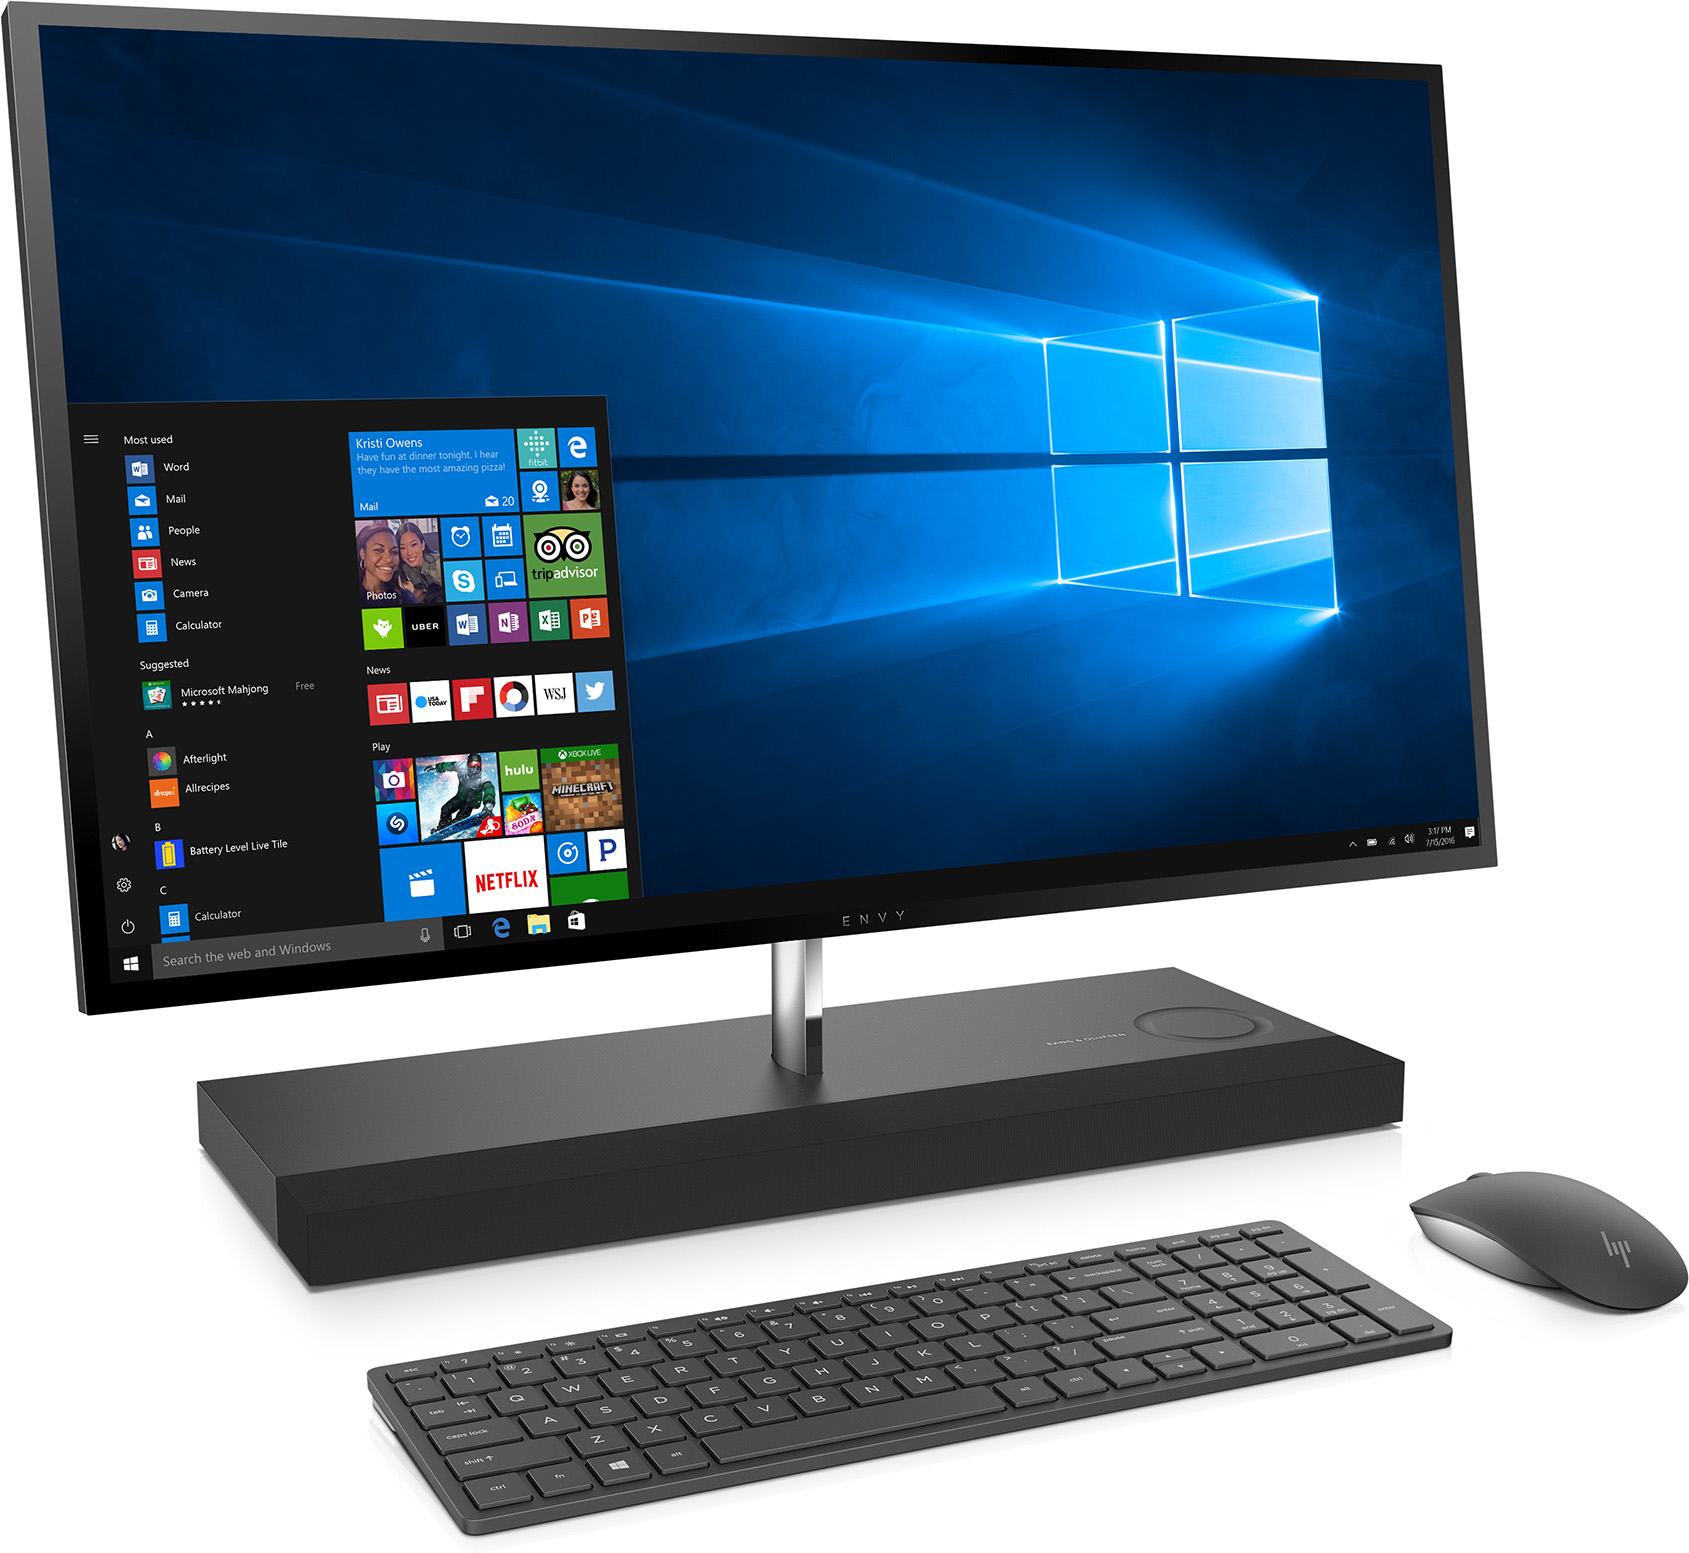 HP ENVY 27-b111 All-in-One